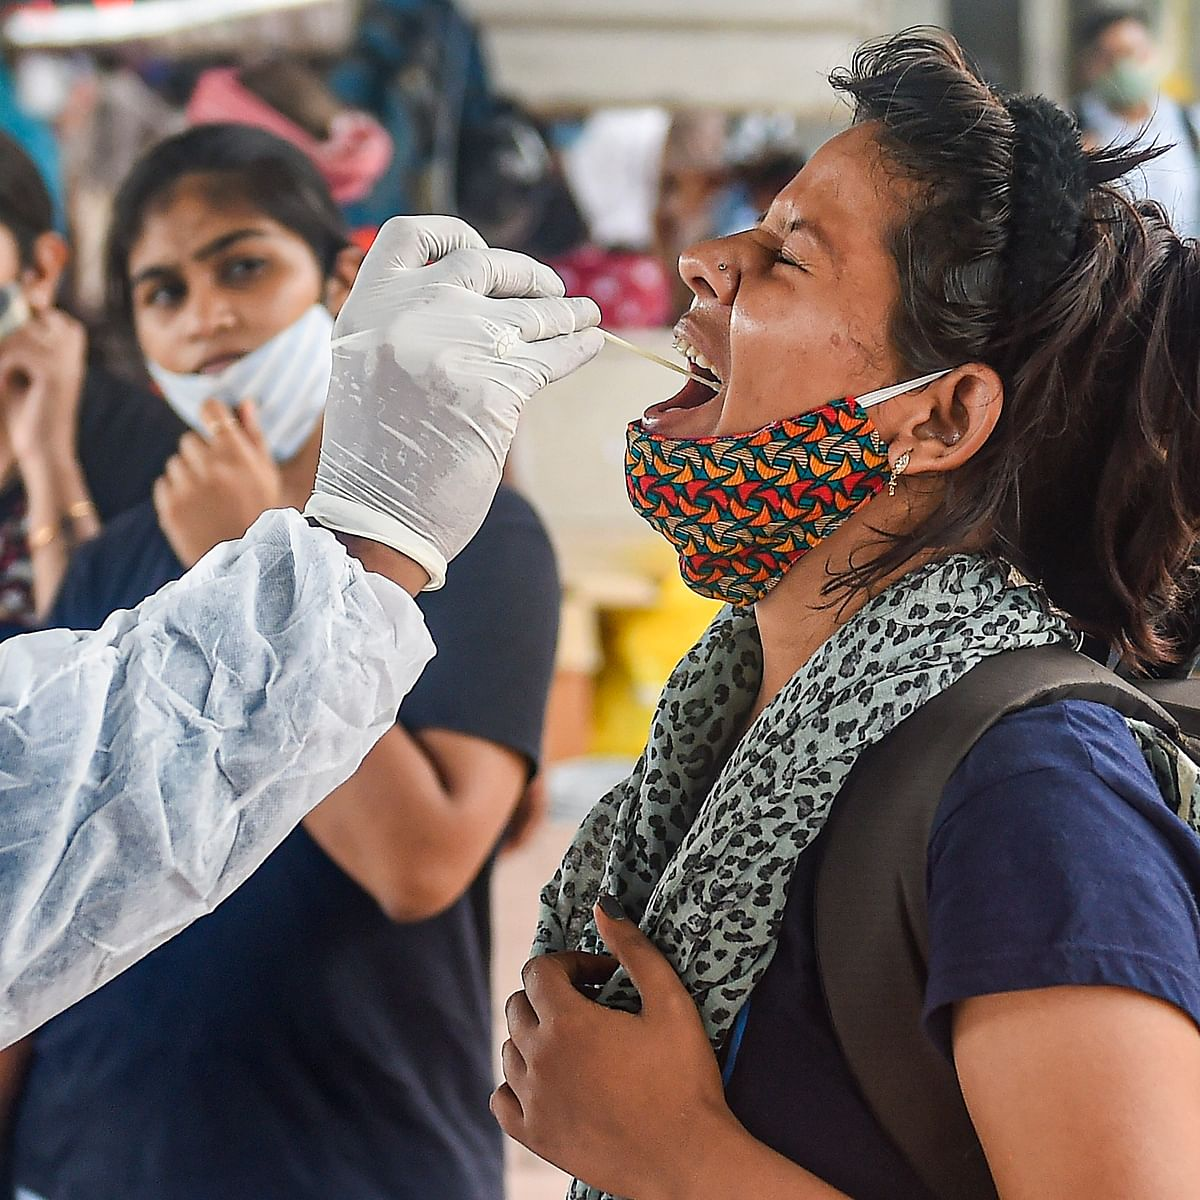 COVID-19 is far from over: Centre says 'need to work on containing spread of virus with strictness'